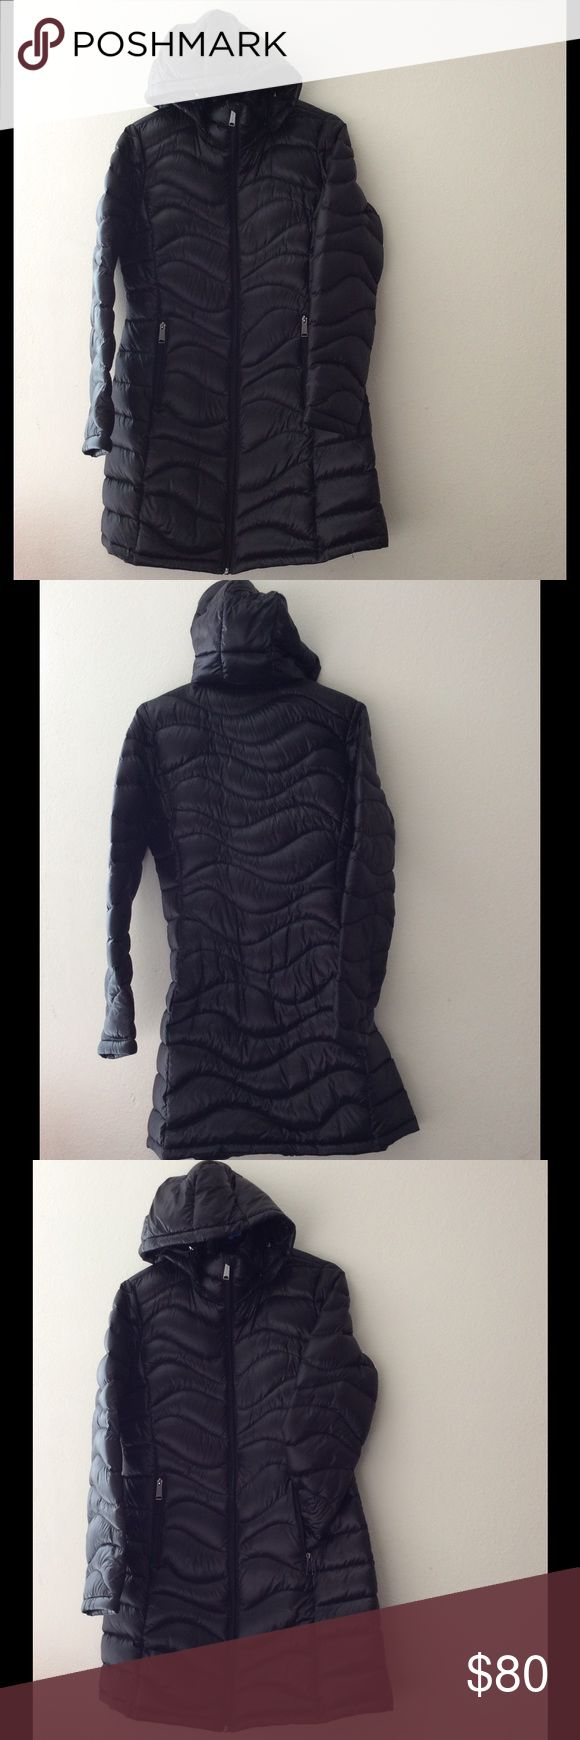 Andrew marc winter coat(fashion) Packable,lightweight premium down,650 fill power,OF warmth factor,this garment can keep you warm up to 0 degrees Fahrenheit.Dark gray,light black,2 pocket inside very deeply to bottom and 2pocket front. Andrew Marc Jackets & Coats